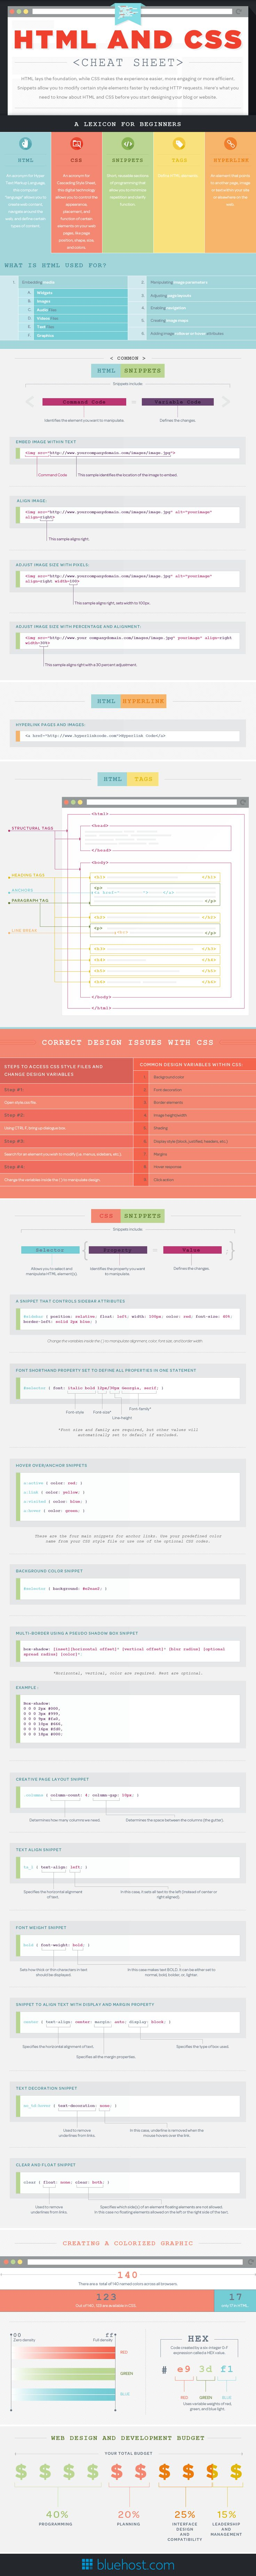 HTML and CSS Cheat Sheet - #infographic